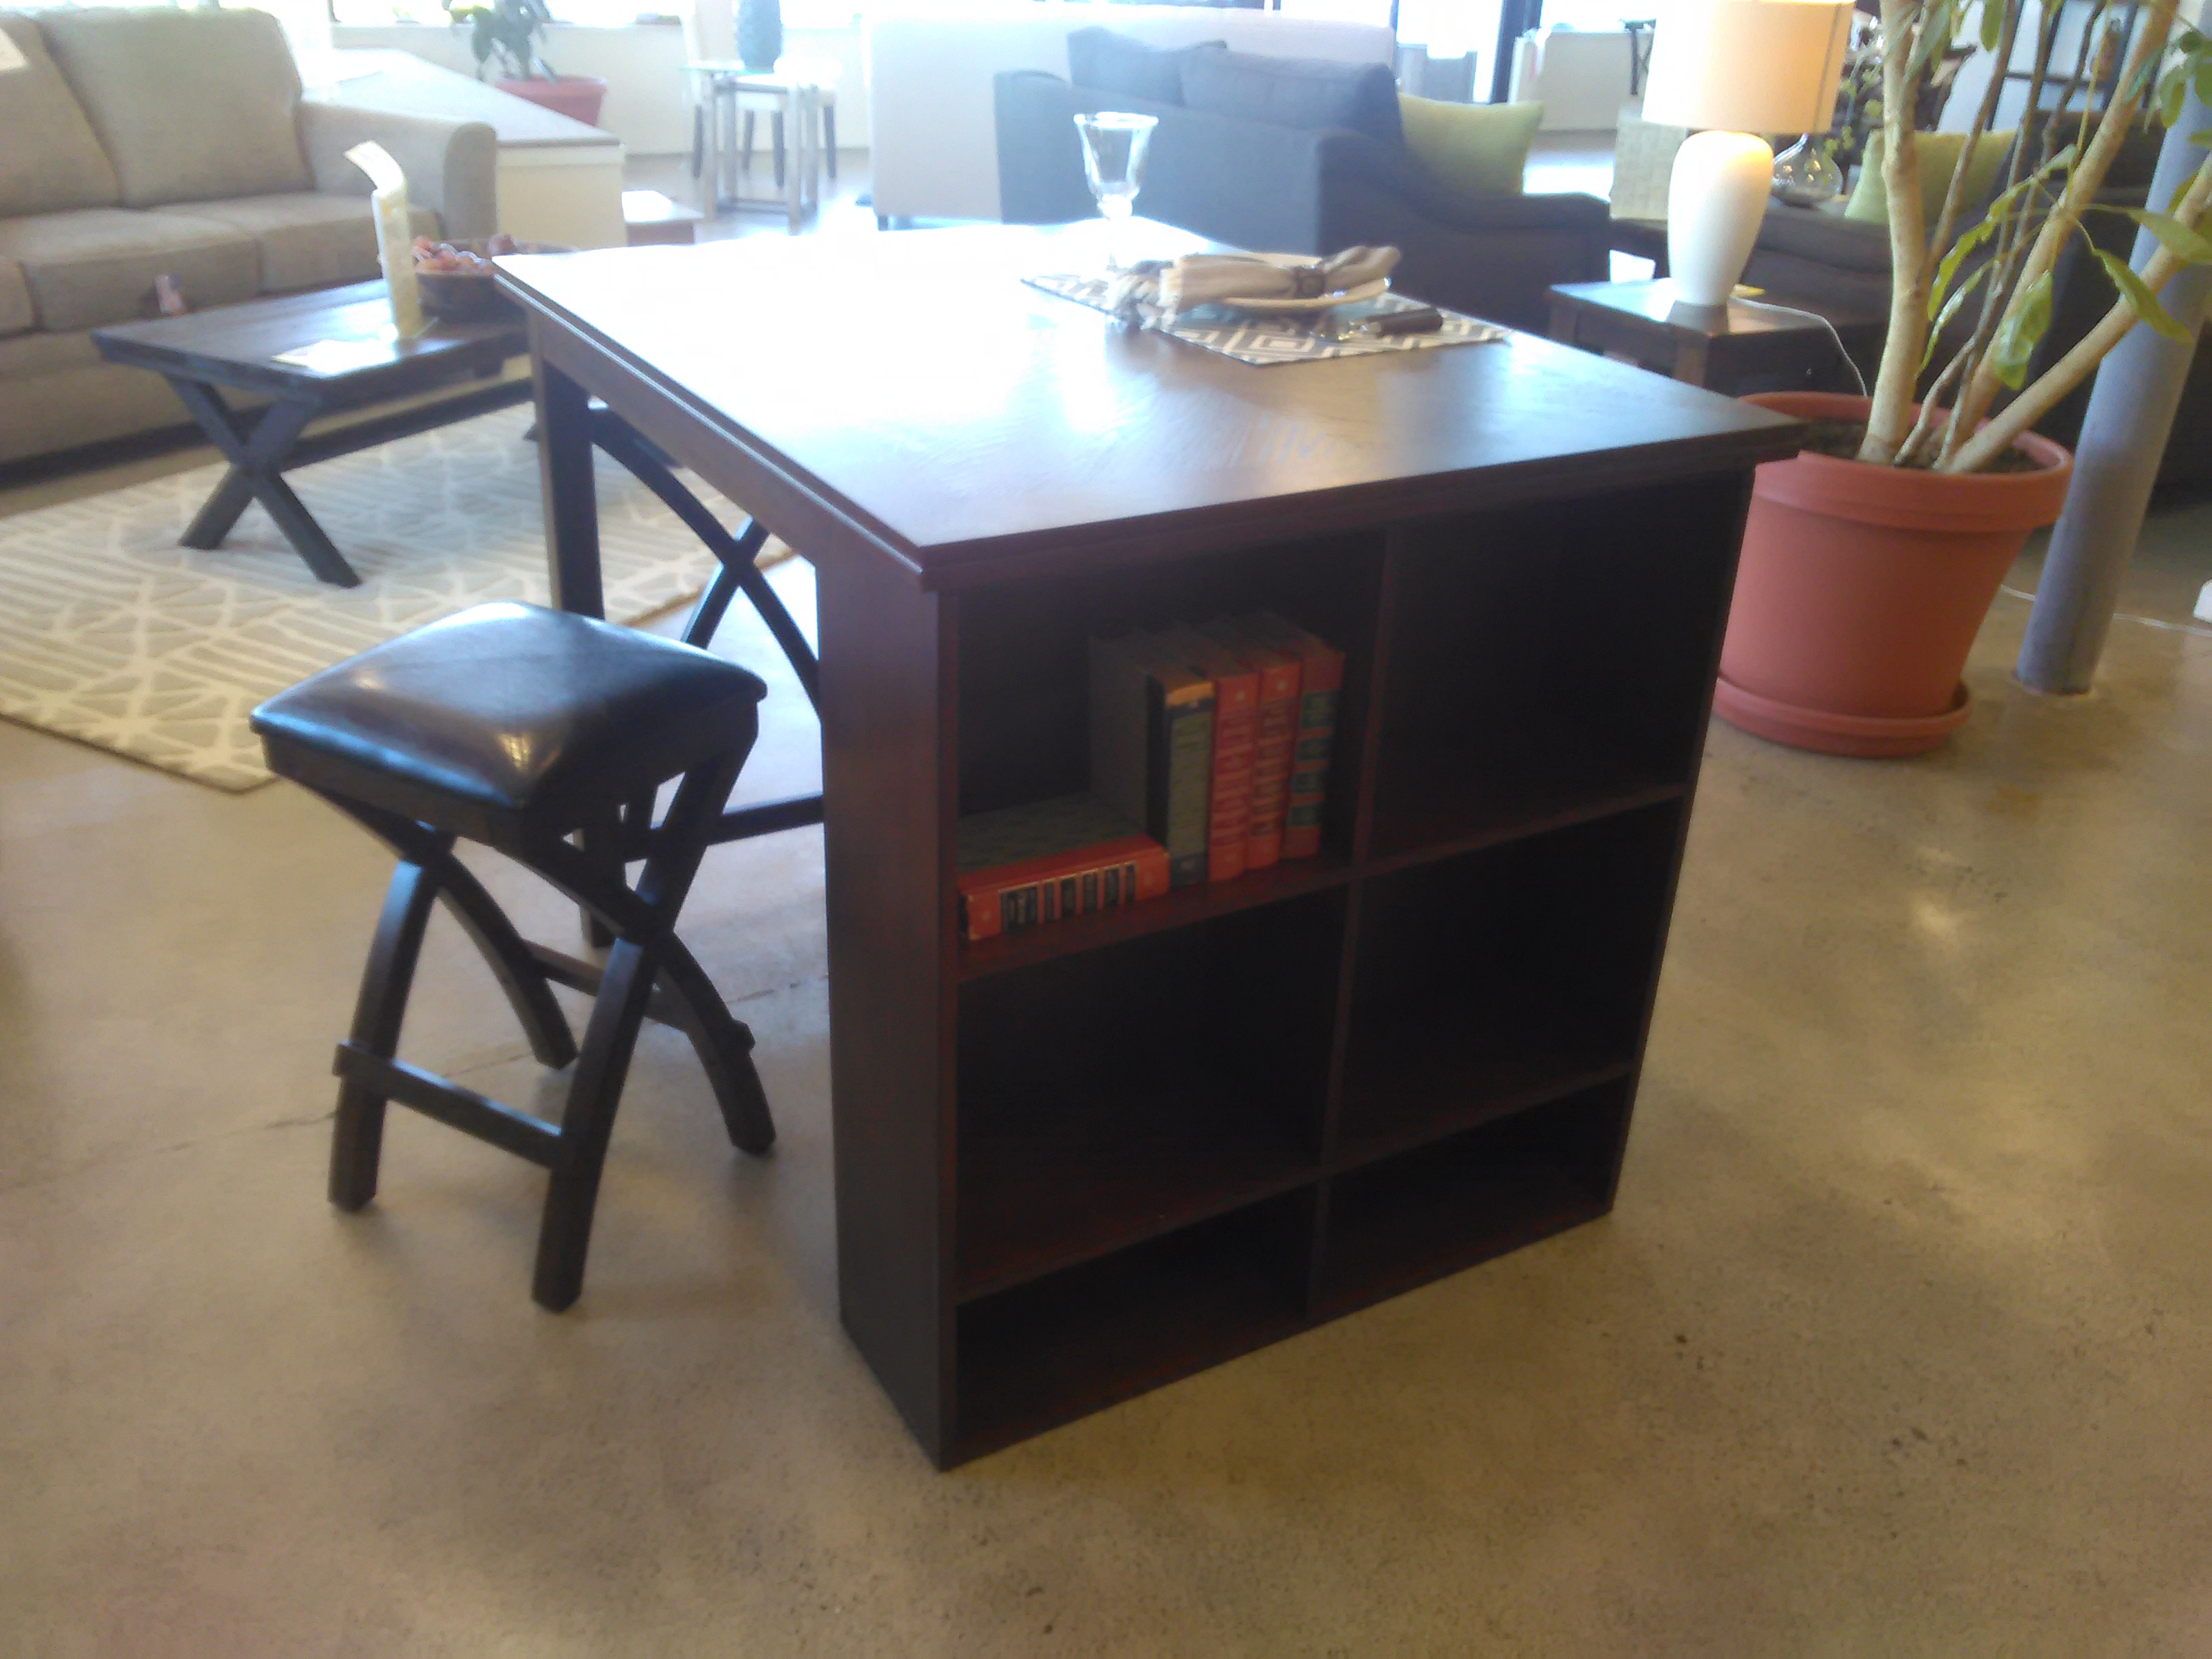 Furniture Today Of Furniture Today Concord Quality Furniture At Discount